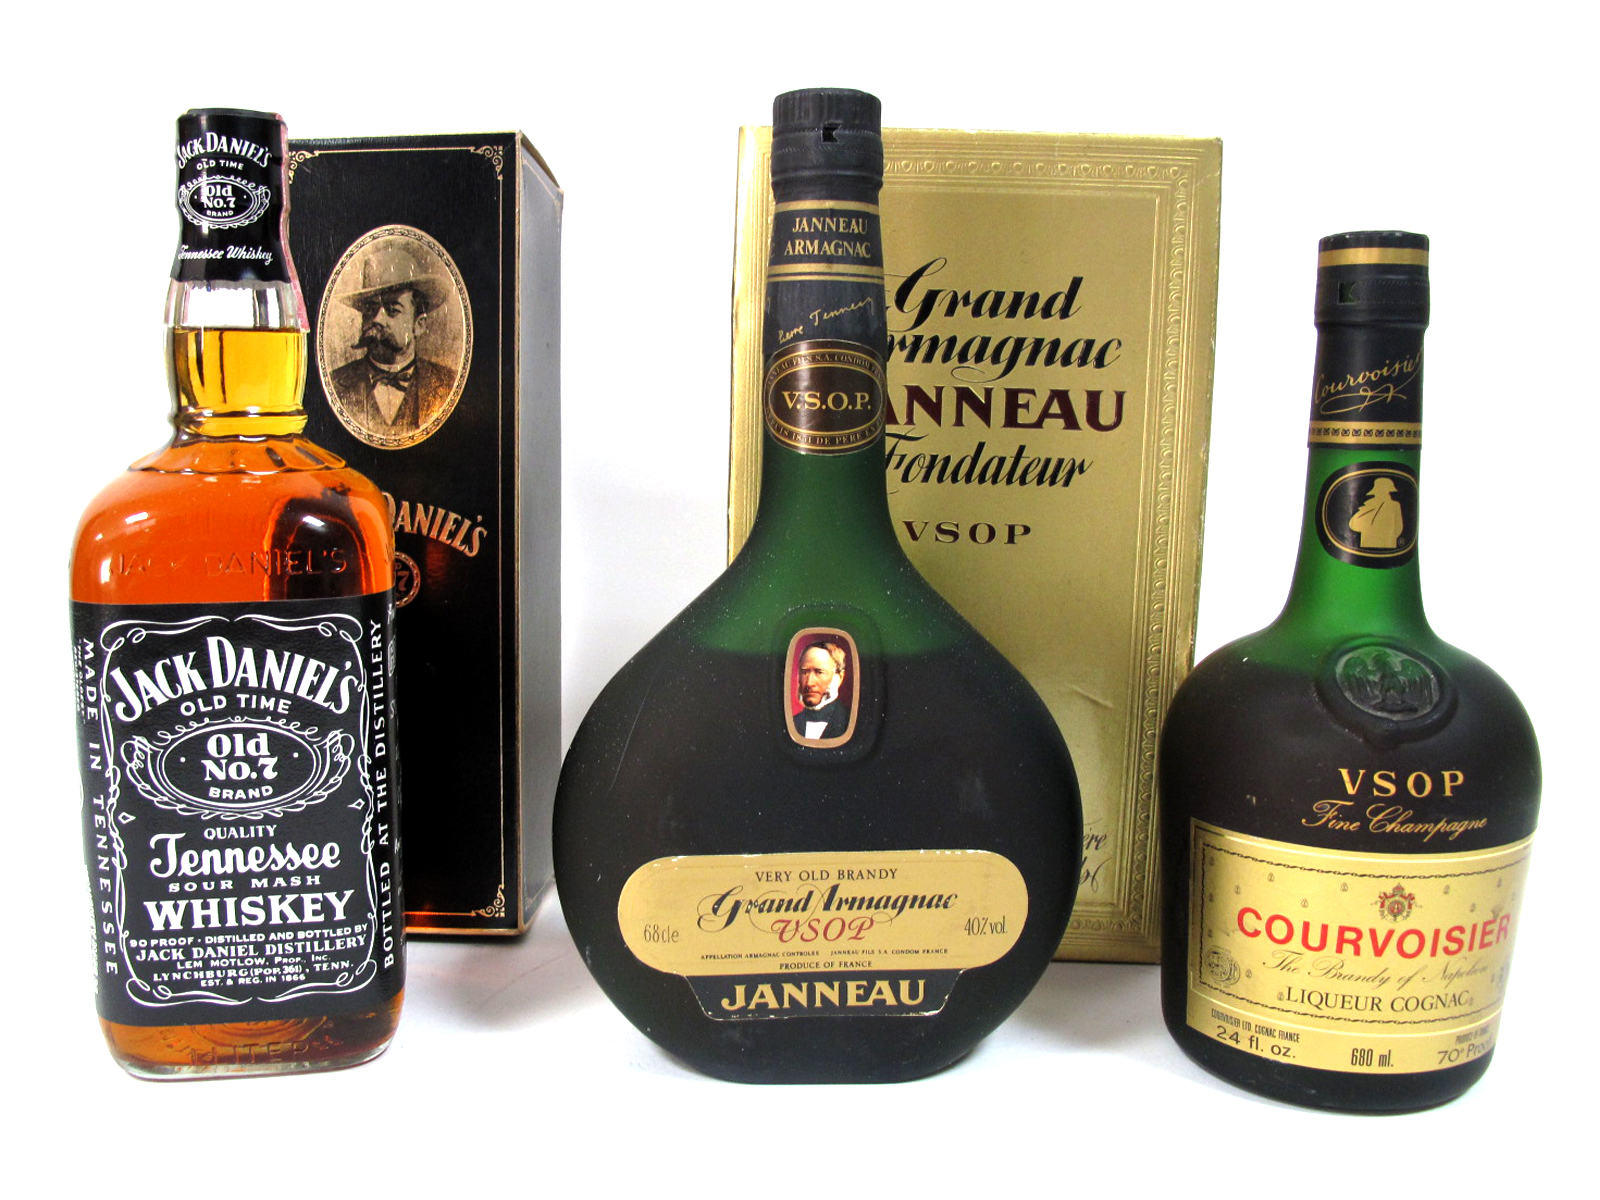 Lot 61 - Spirits - Janneau Grand Armagnac V.S.O.P Very Old Brandy, 40% proof, 68cl, boxed; Courvoisier